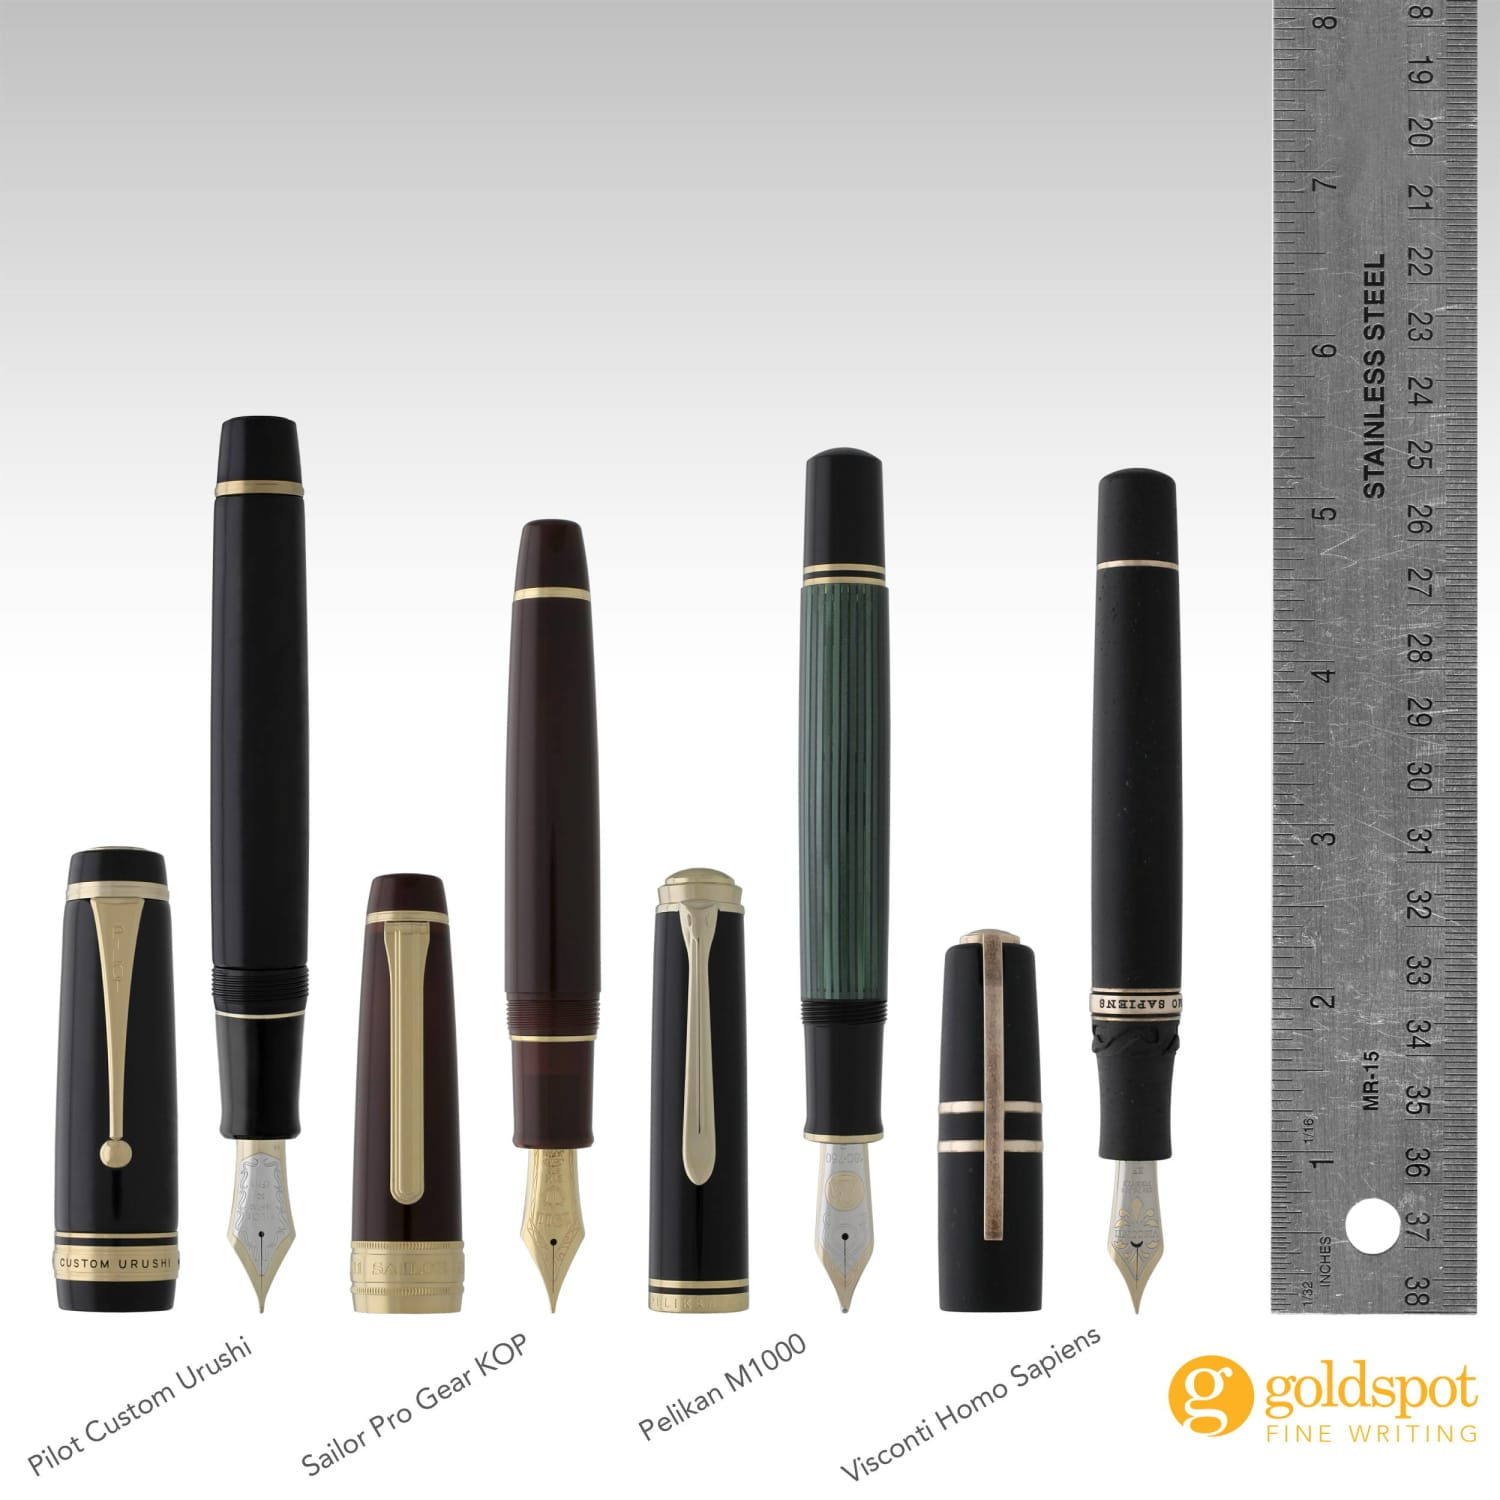 Clash of the Titans - Comparing the Biggest and Baddest Fountain Pens